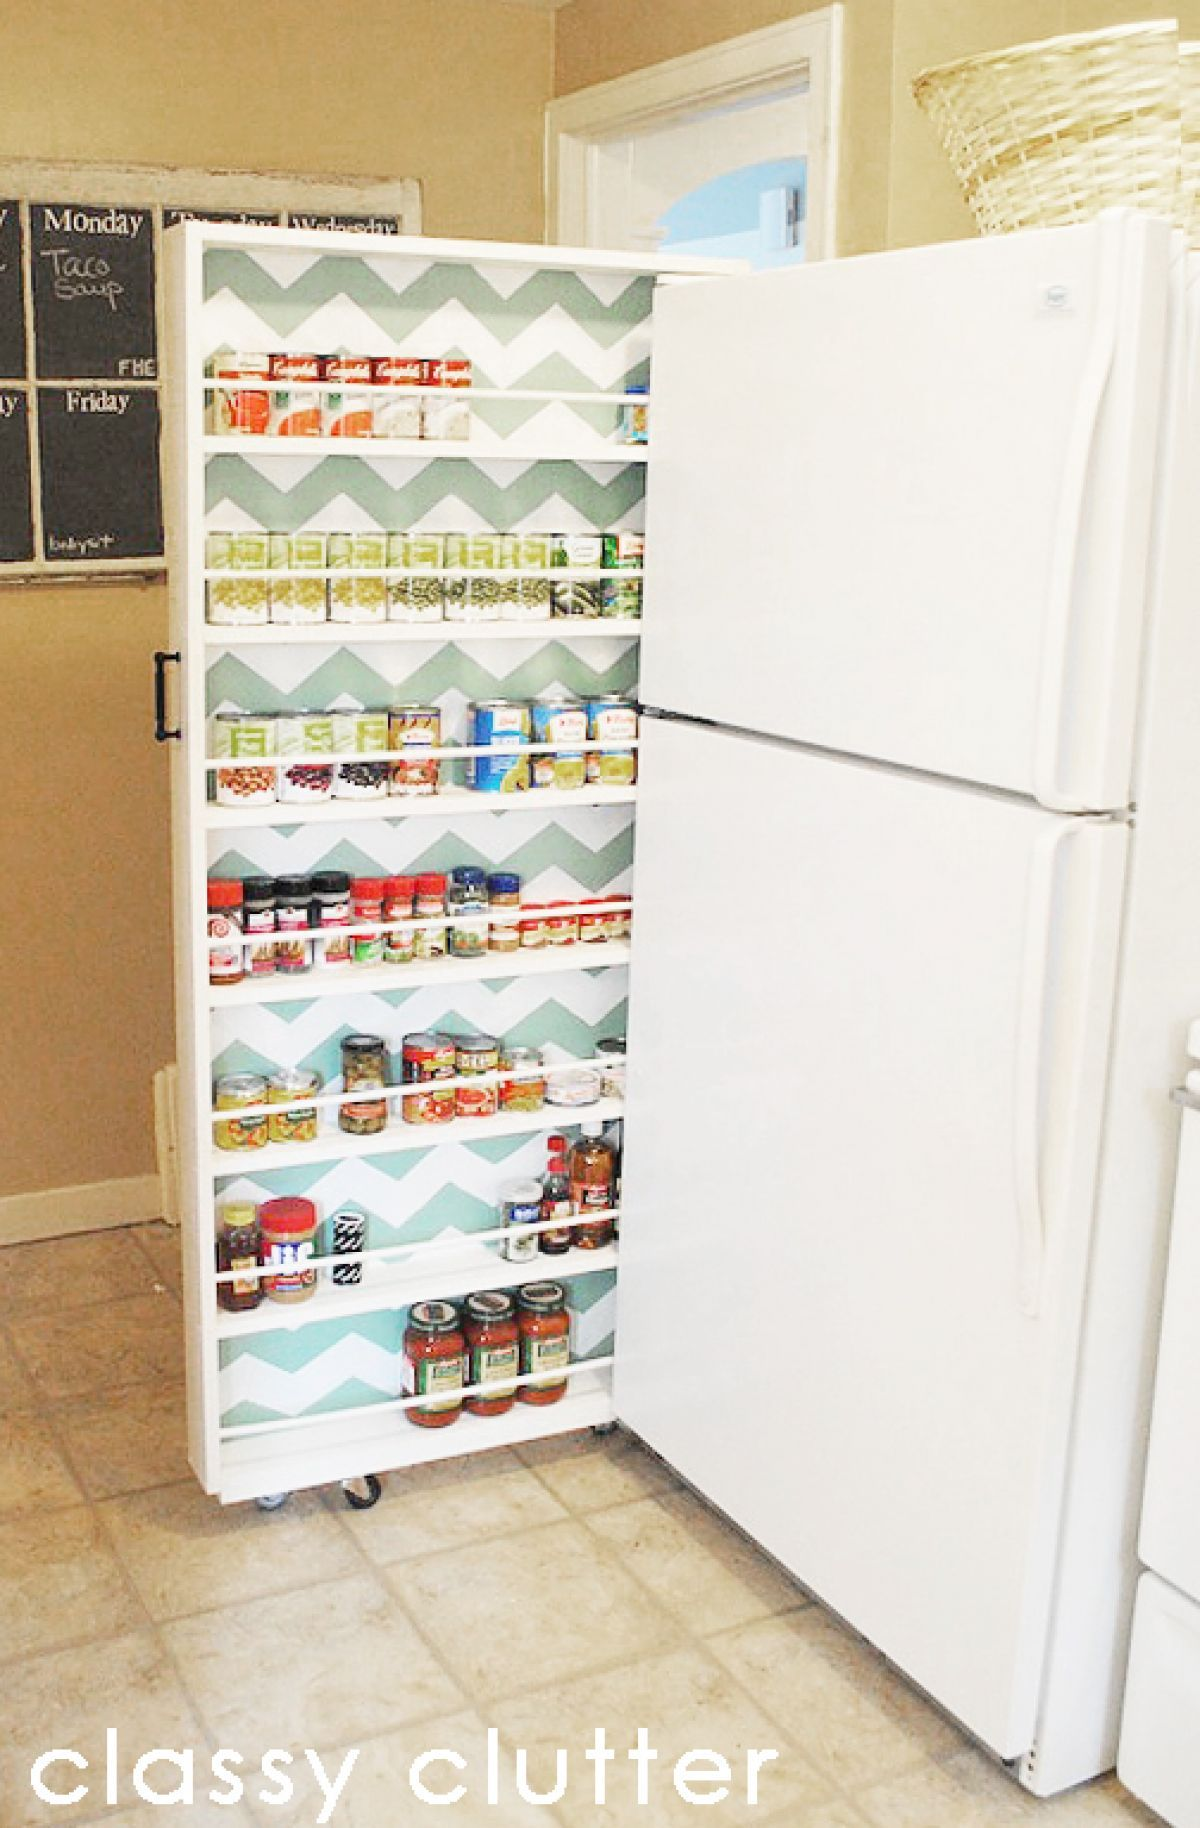 18 Space Saving Ideas Perfect for Any Small Home | Kitchen | Pinterest